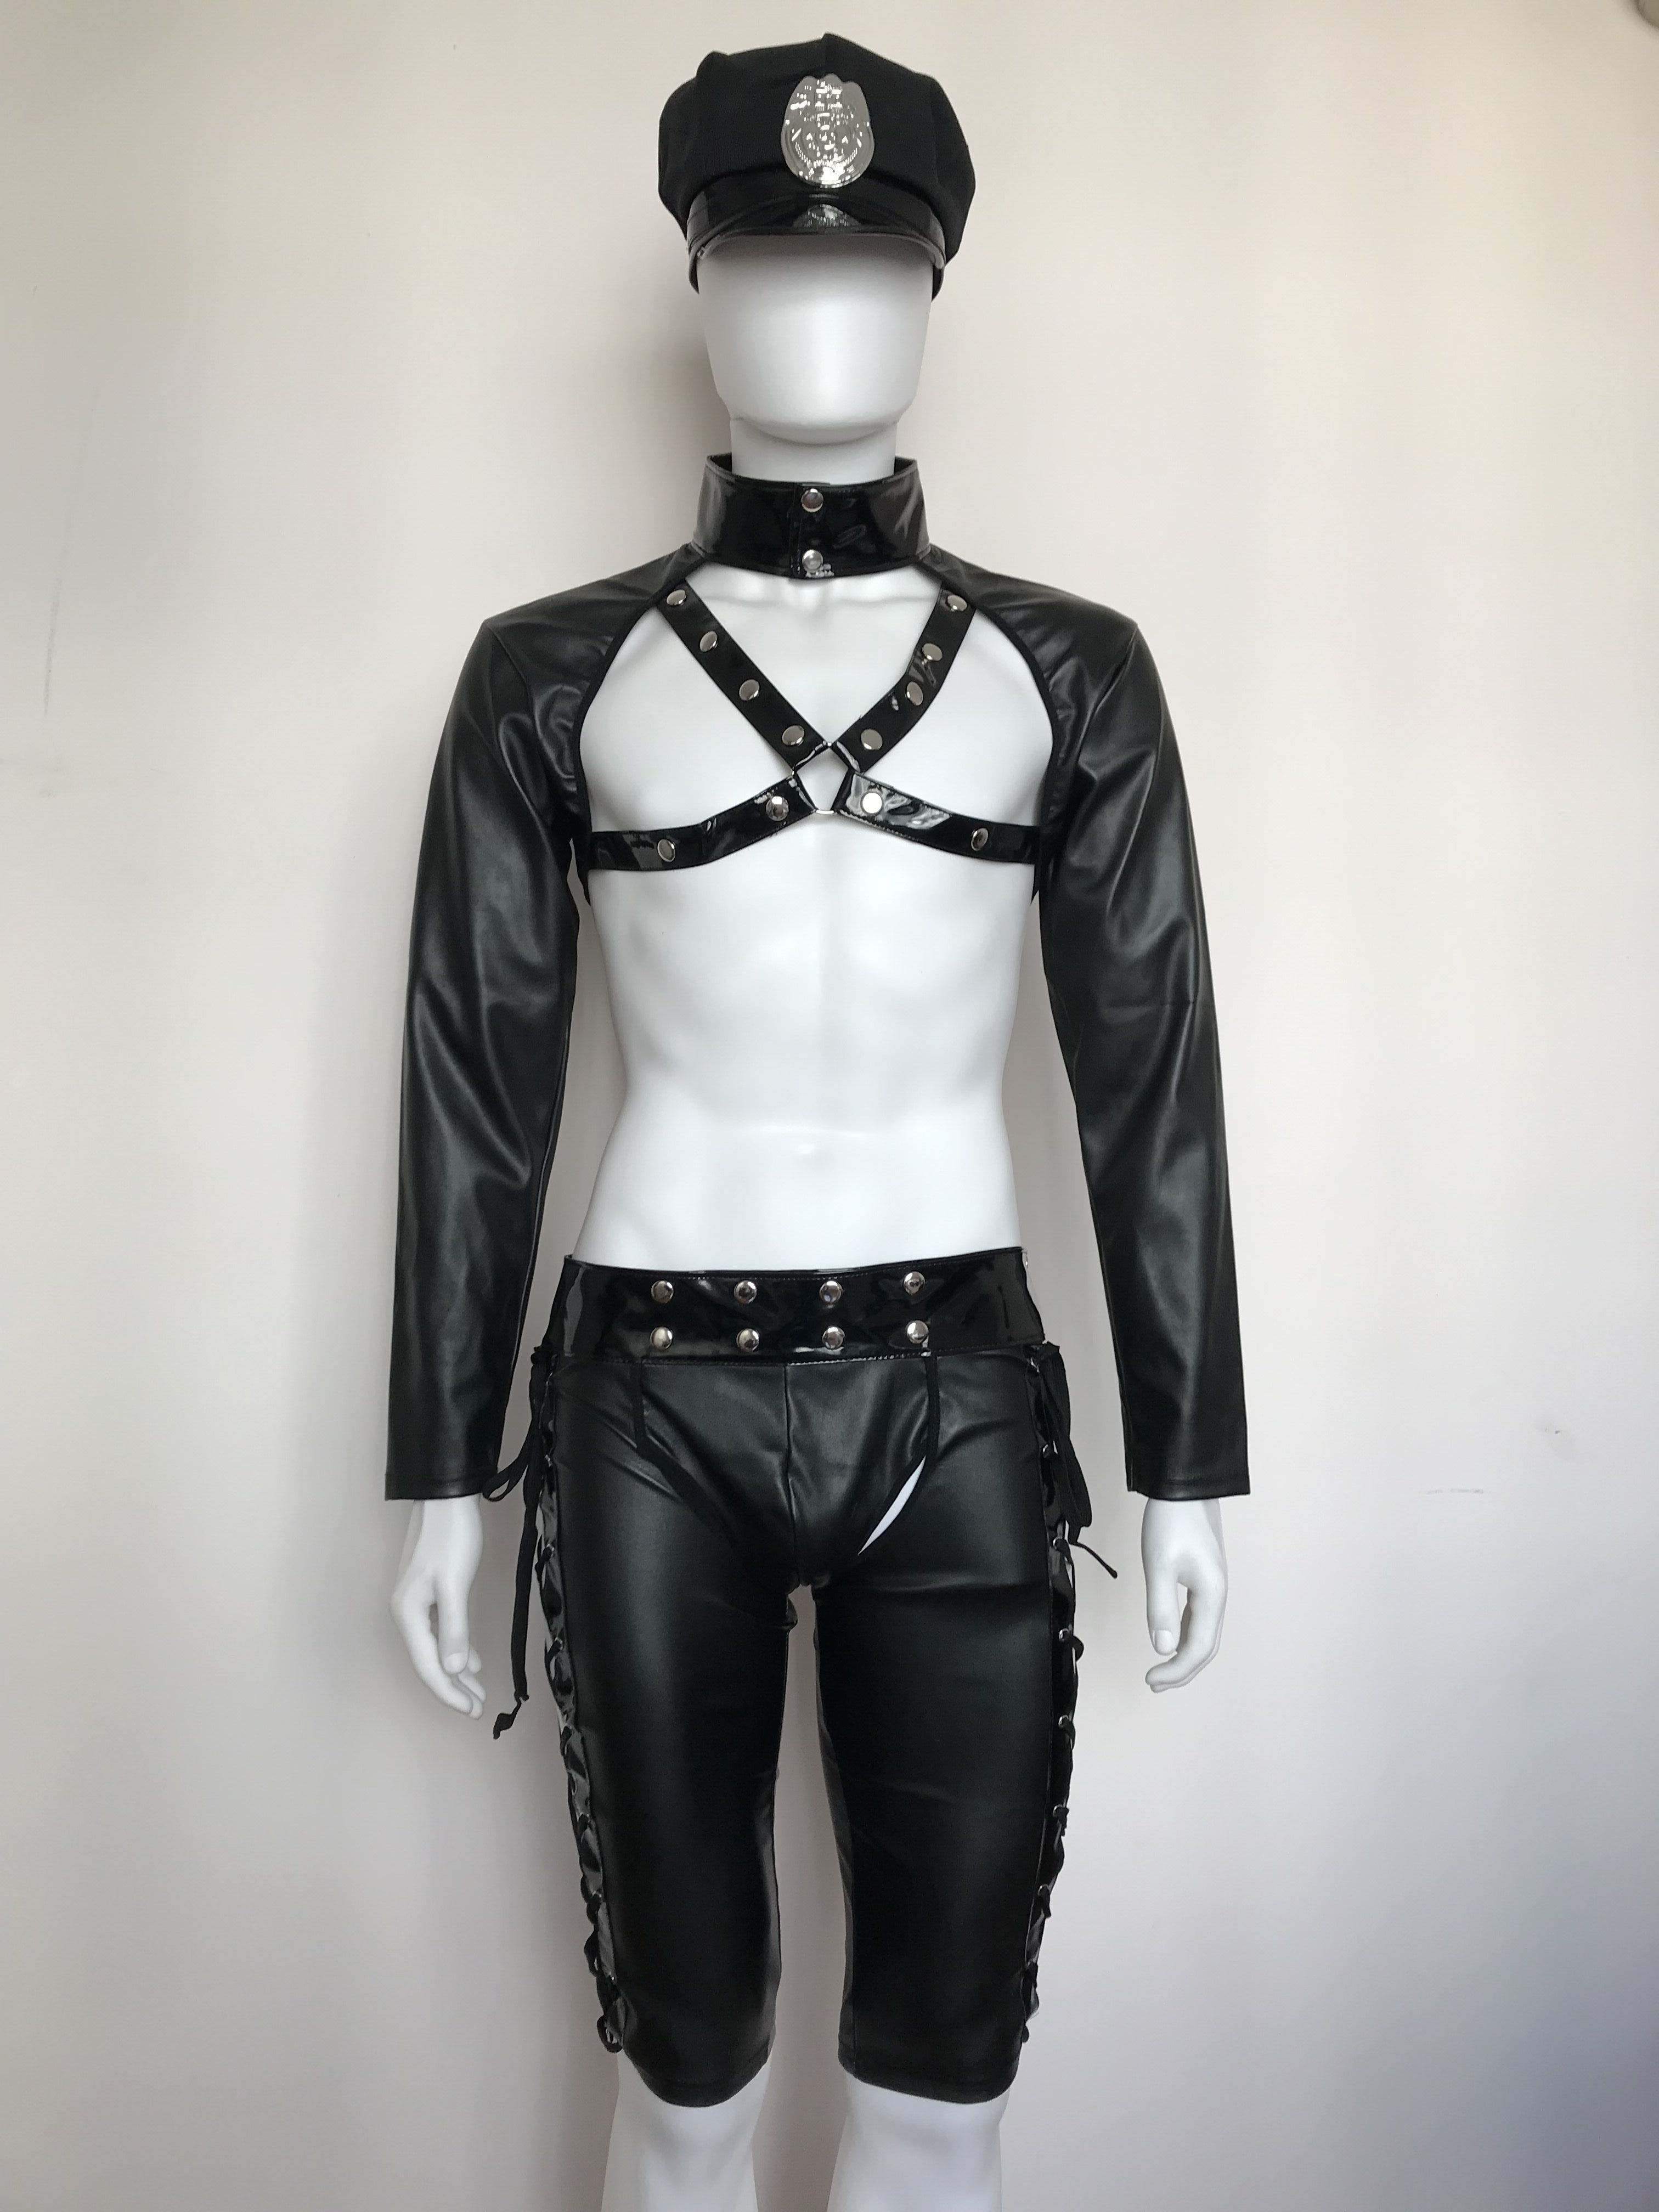 Hot Erotic Men Sexy Fancy Cops PU Leather Halloween Costume Police UniformsCostumes Sexy Police Officer Cosplay Costume